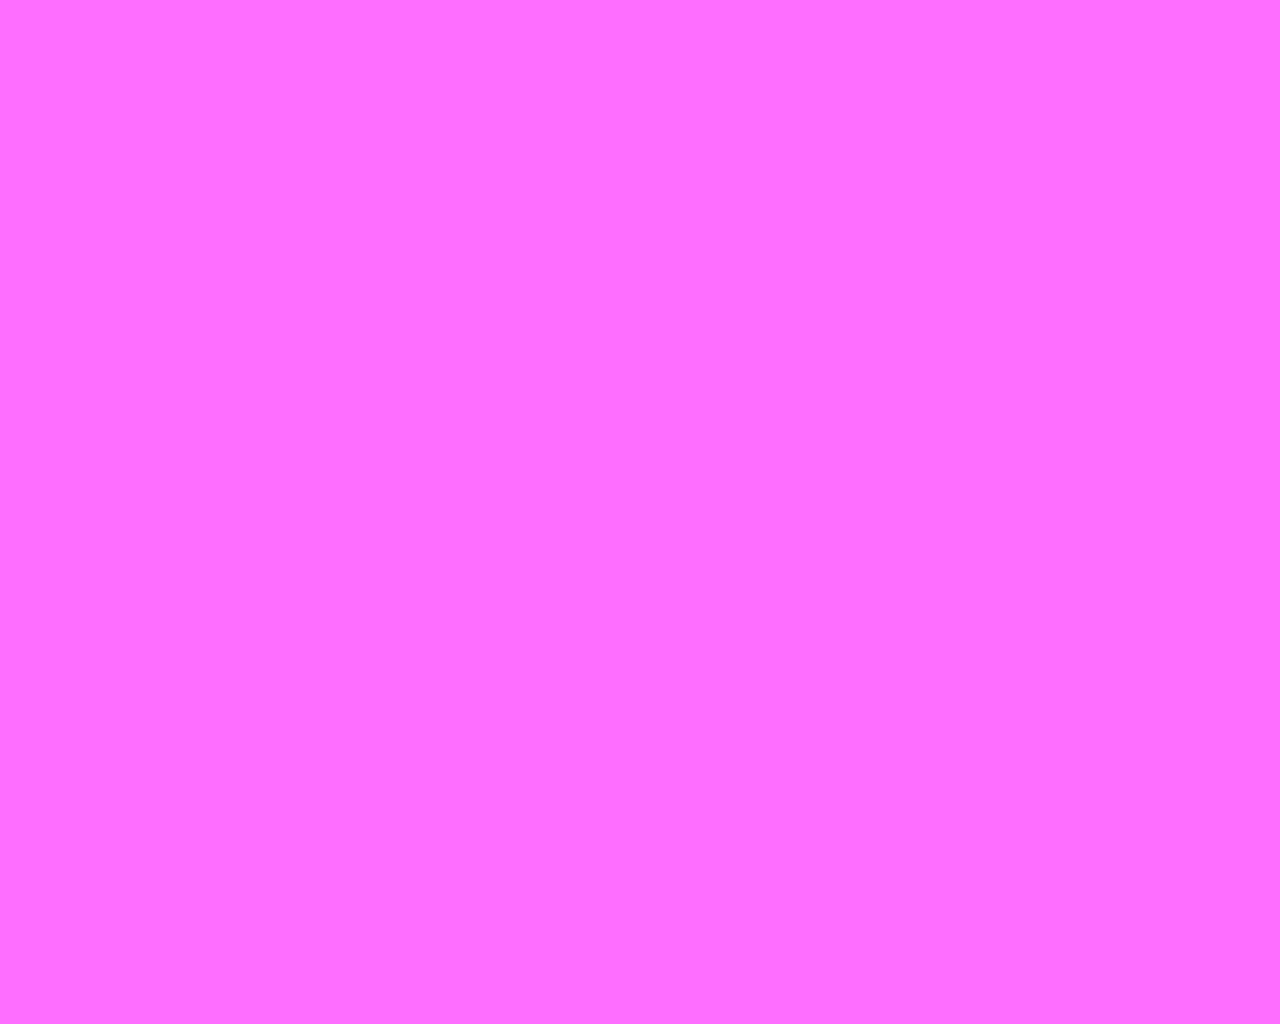 1280x1024 Shocking Pink Crayola Solid Color Background